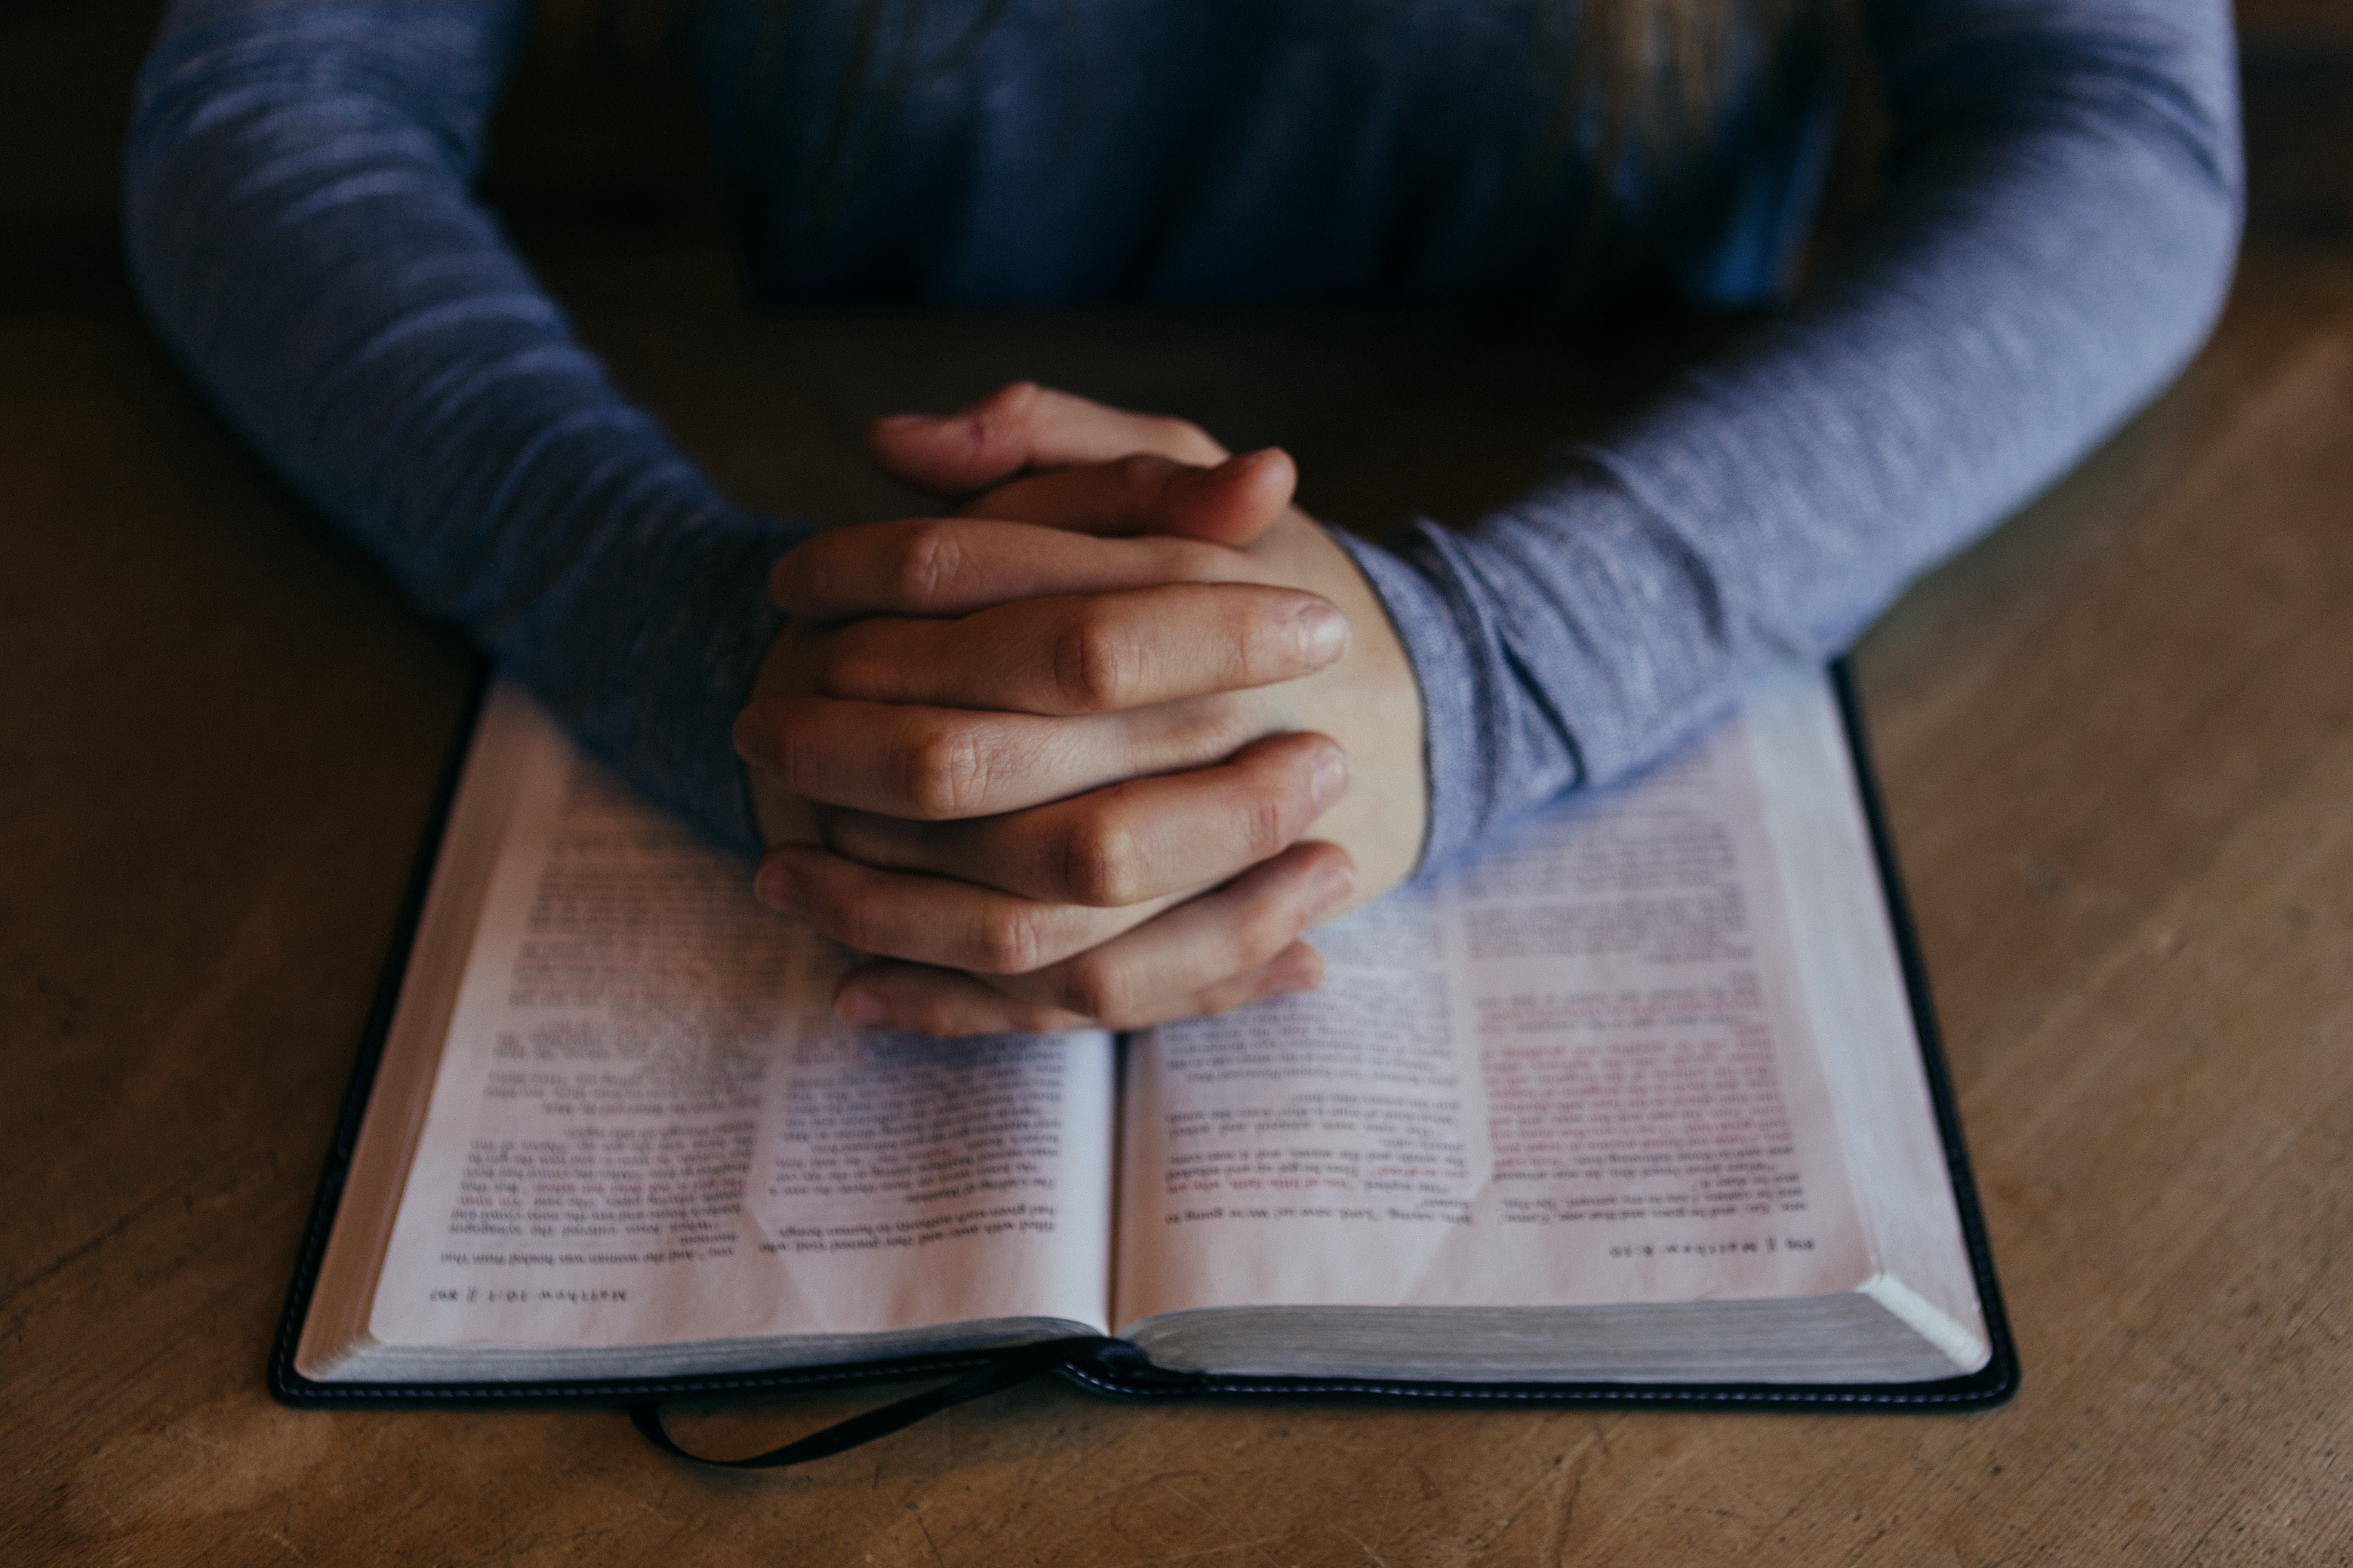 A pair of hands in a prayer position on an open bible